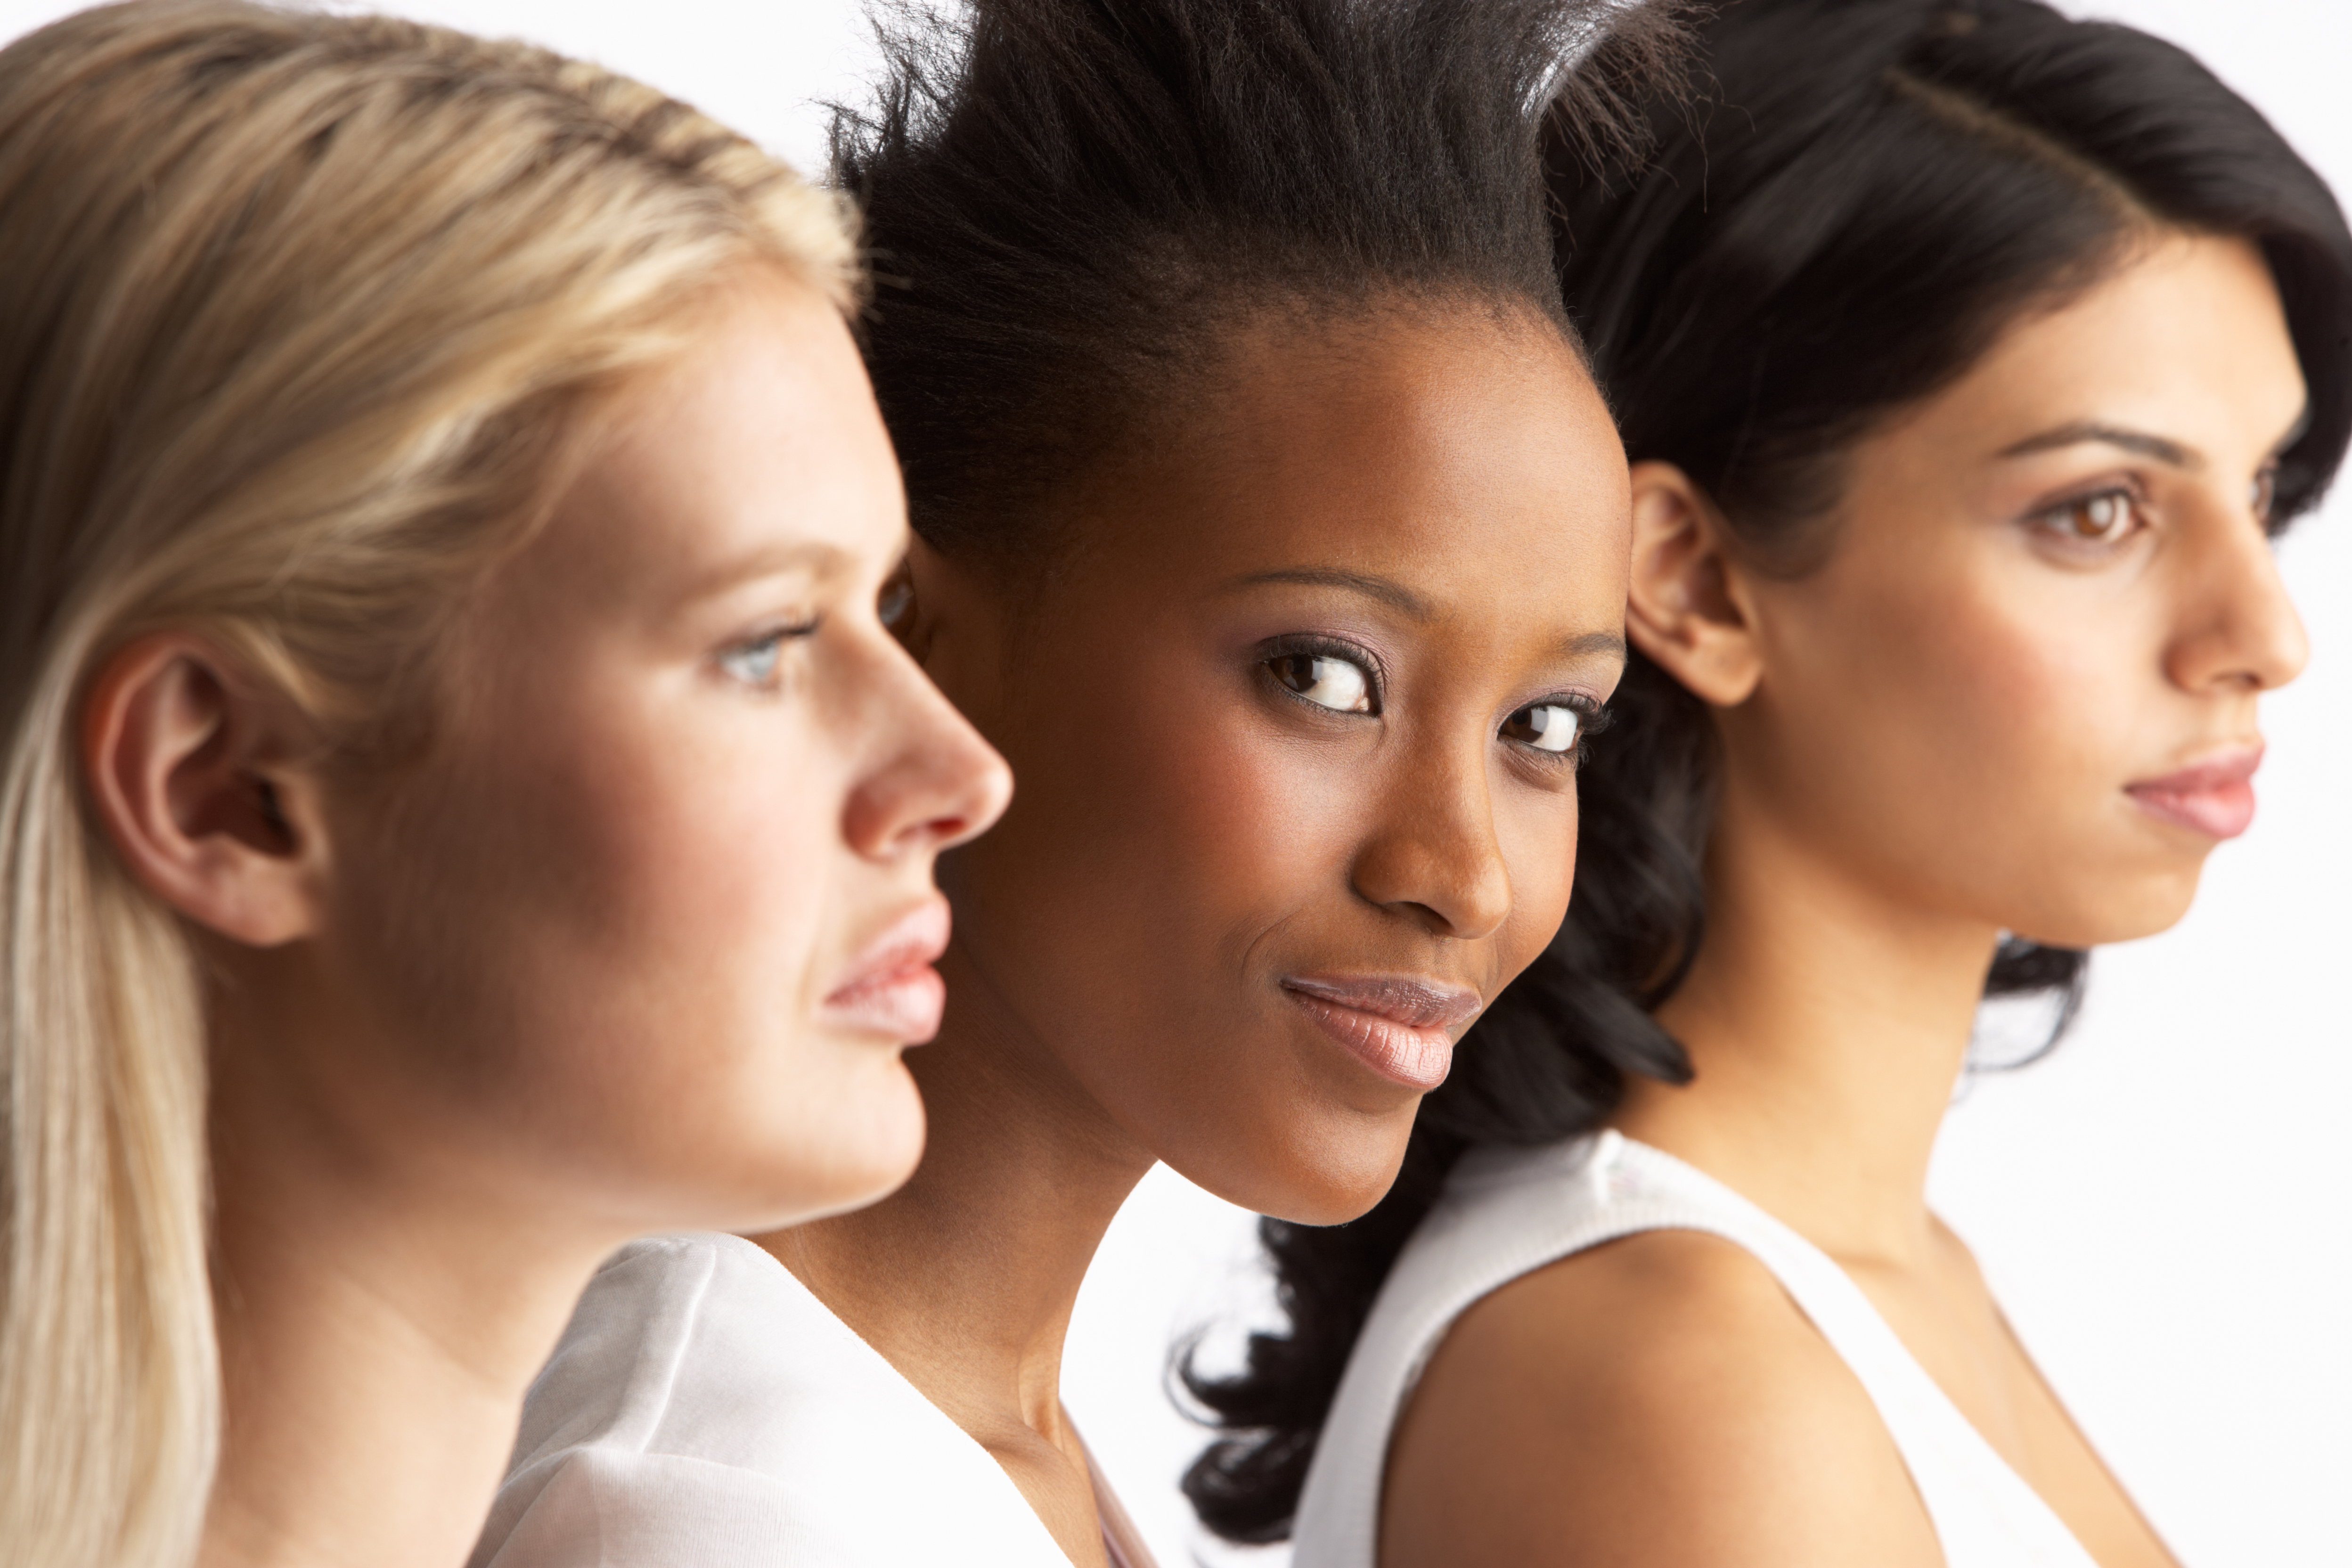 African American Women More Likely to Be Diagnosed With